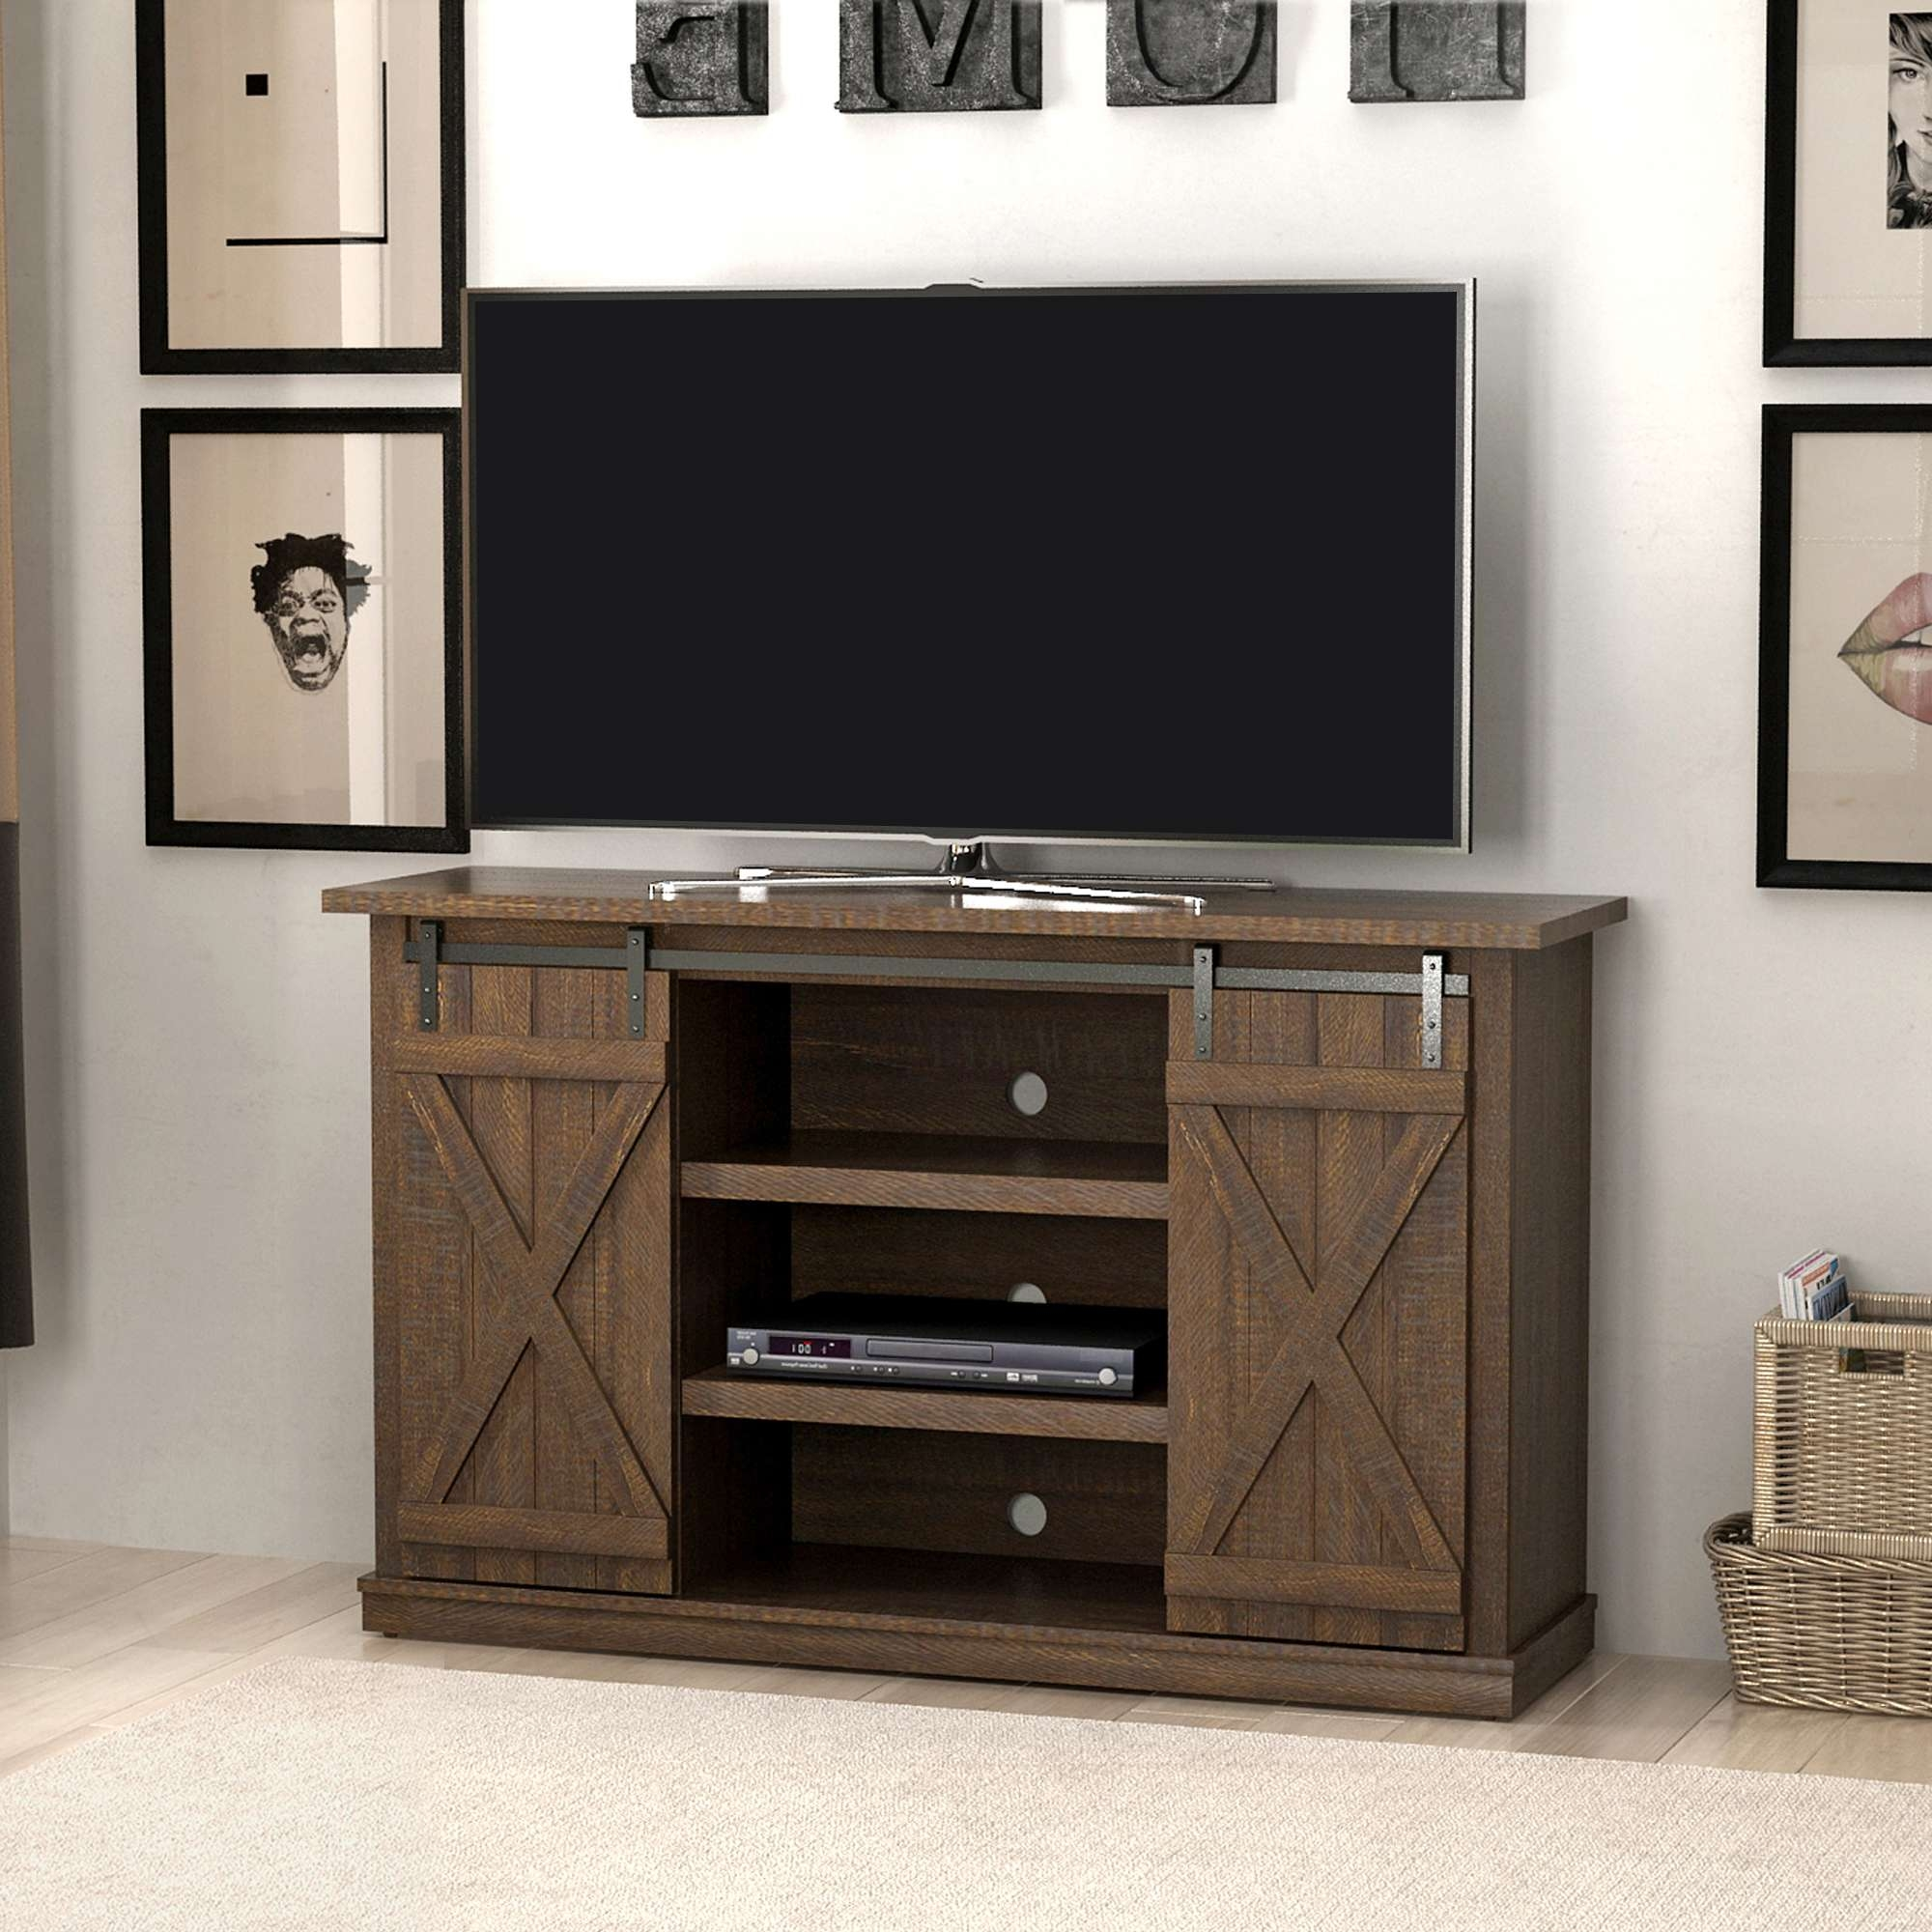 Tv Stands – Walmart Intended For Oak Tv Stands For Flat Screens (View 13 of 15)